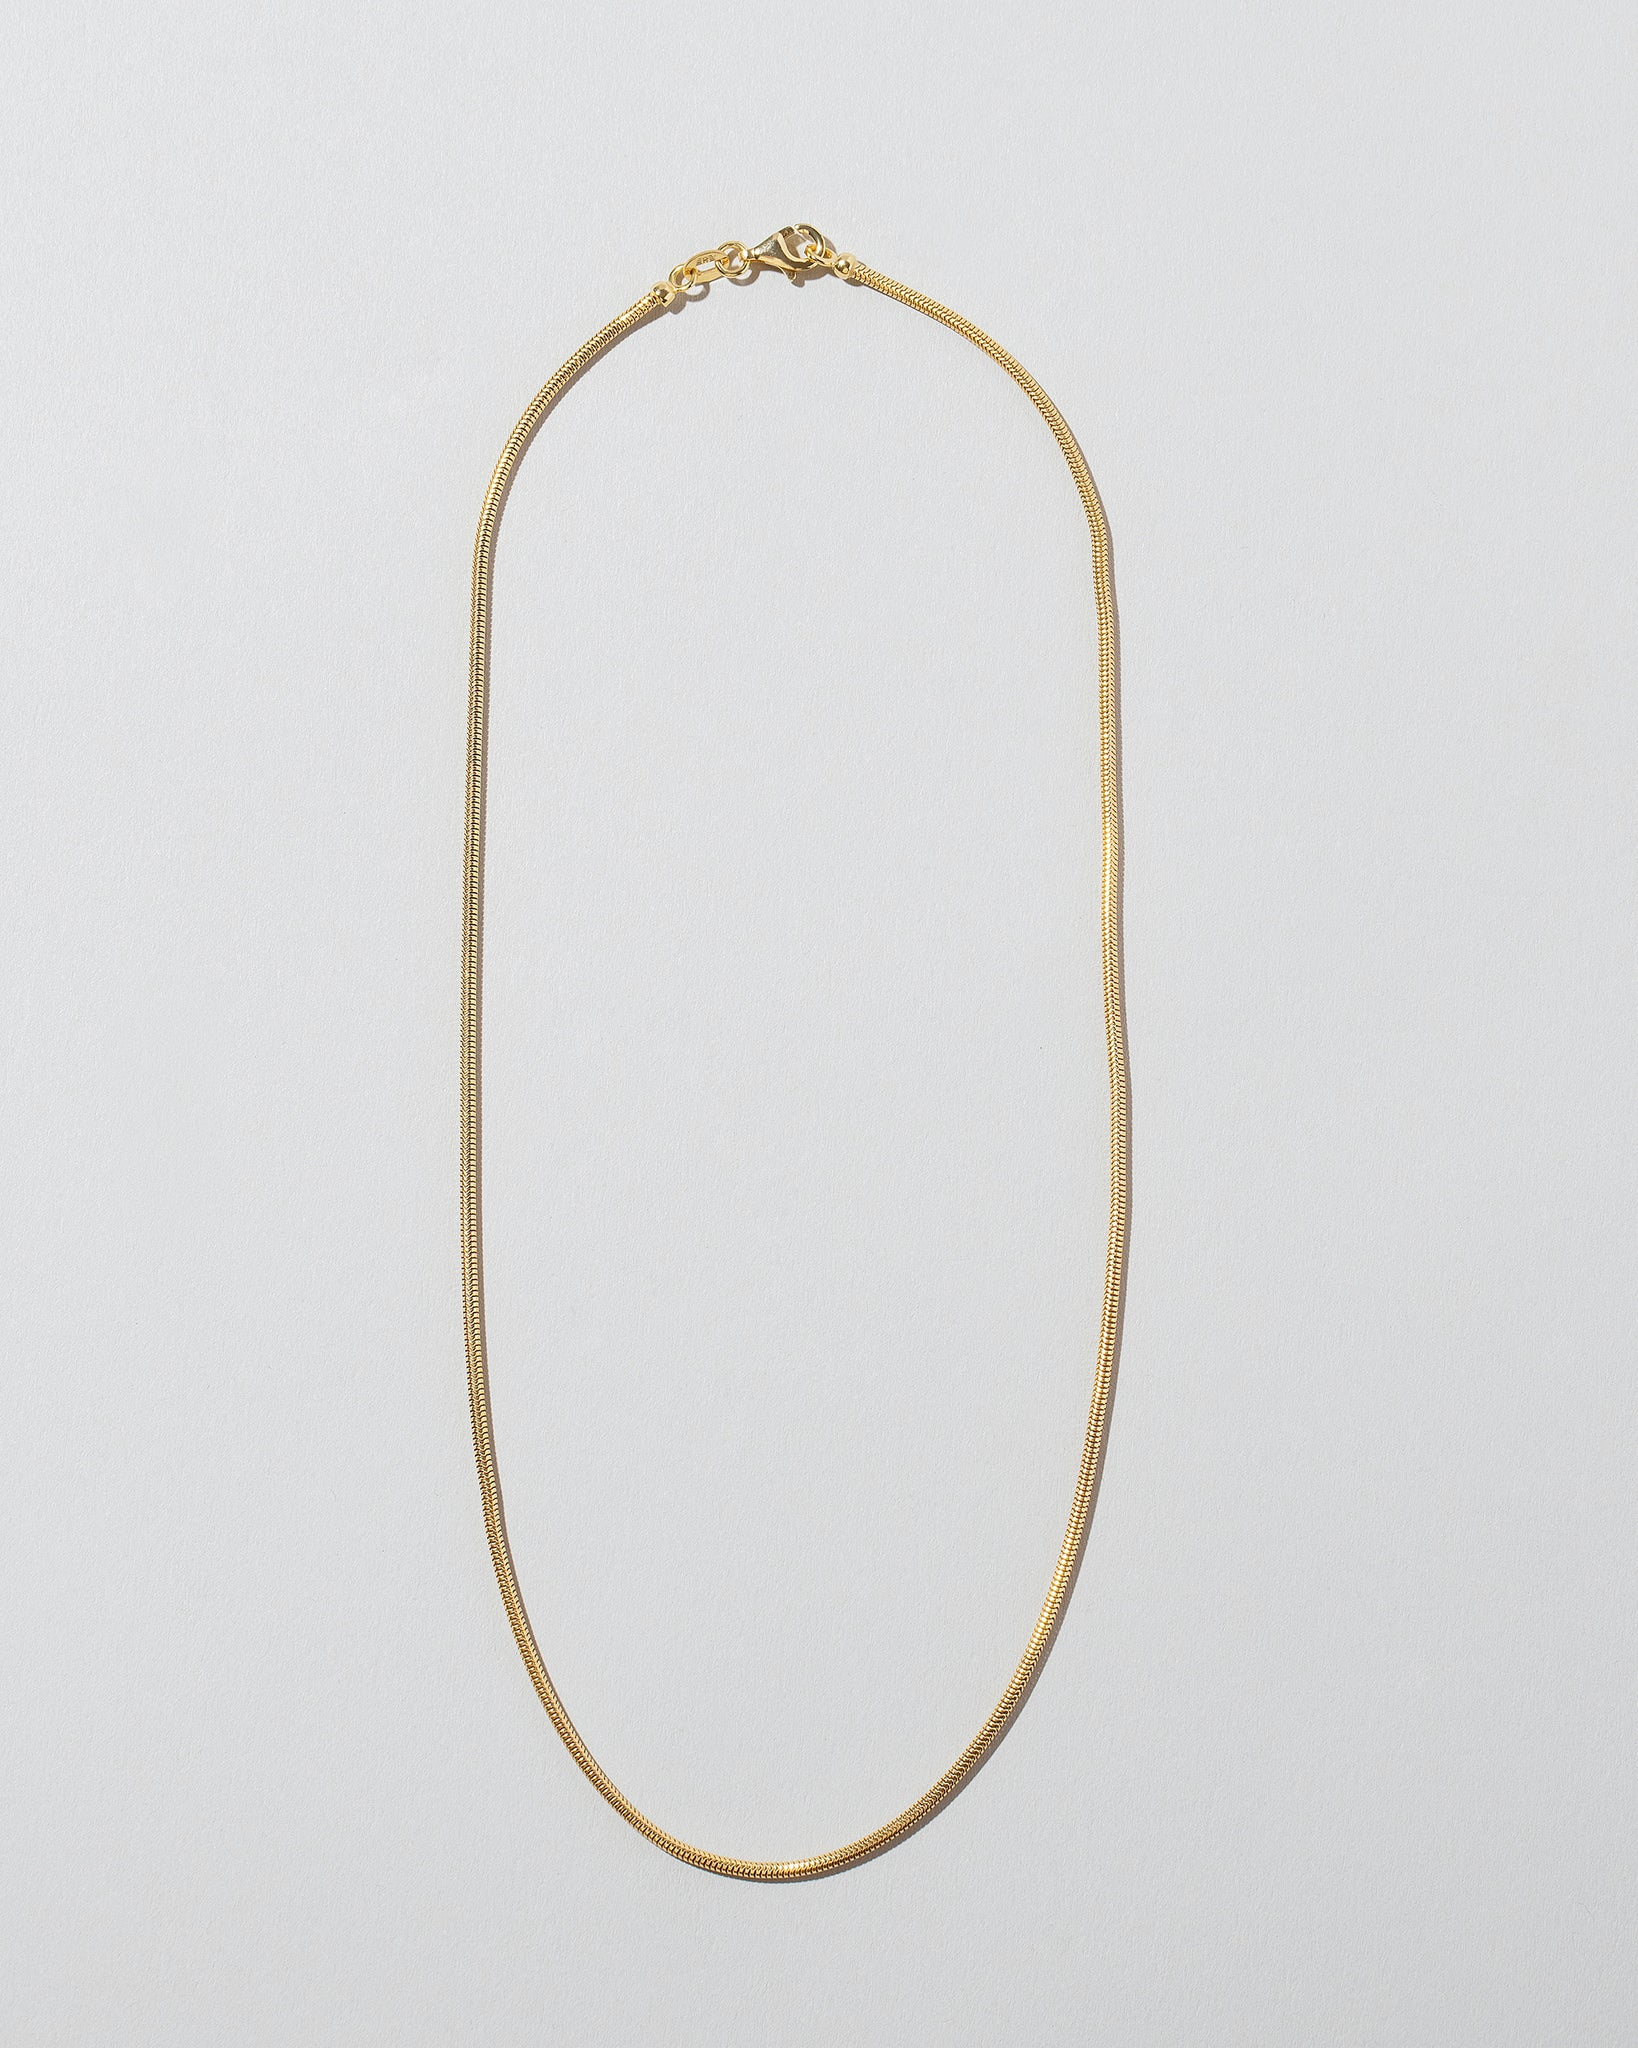 Serpent Chain Necklace 0.9mm